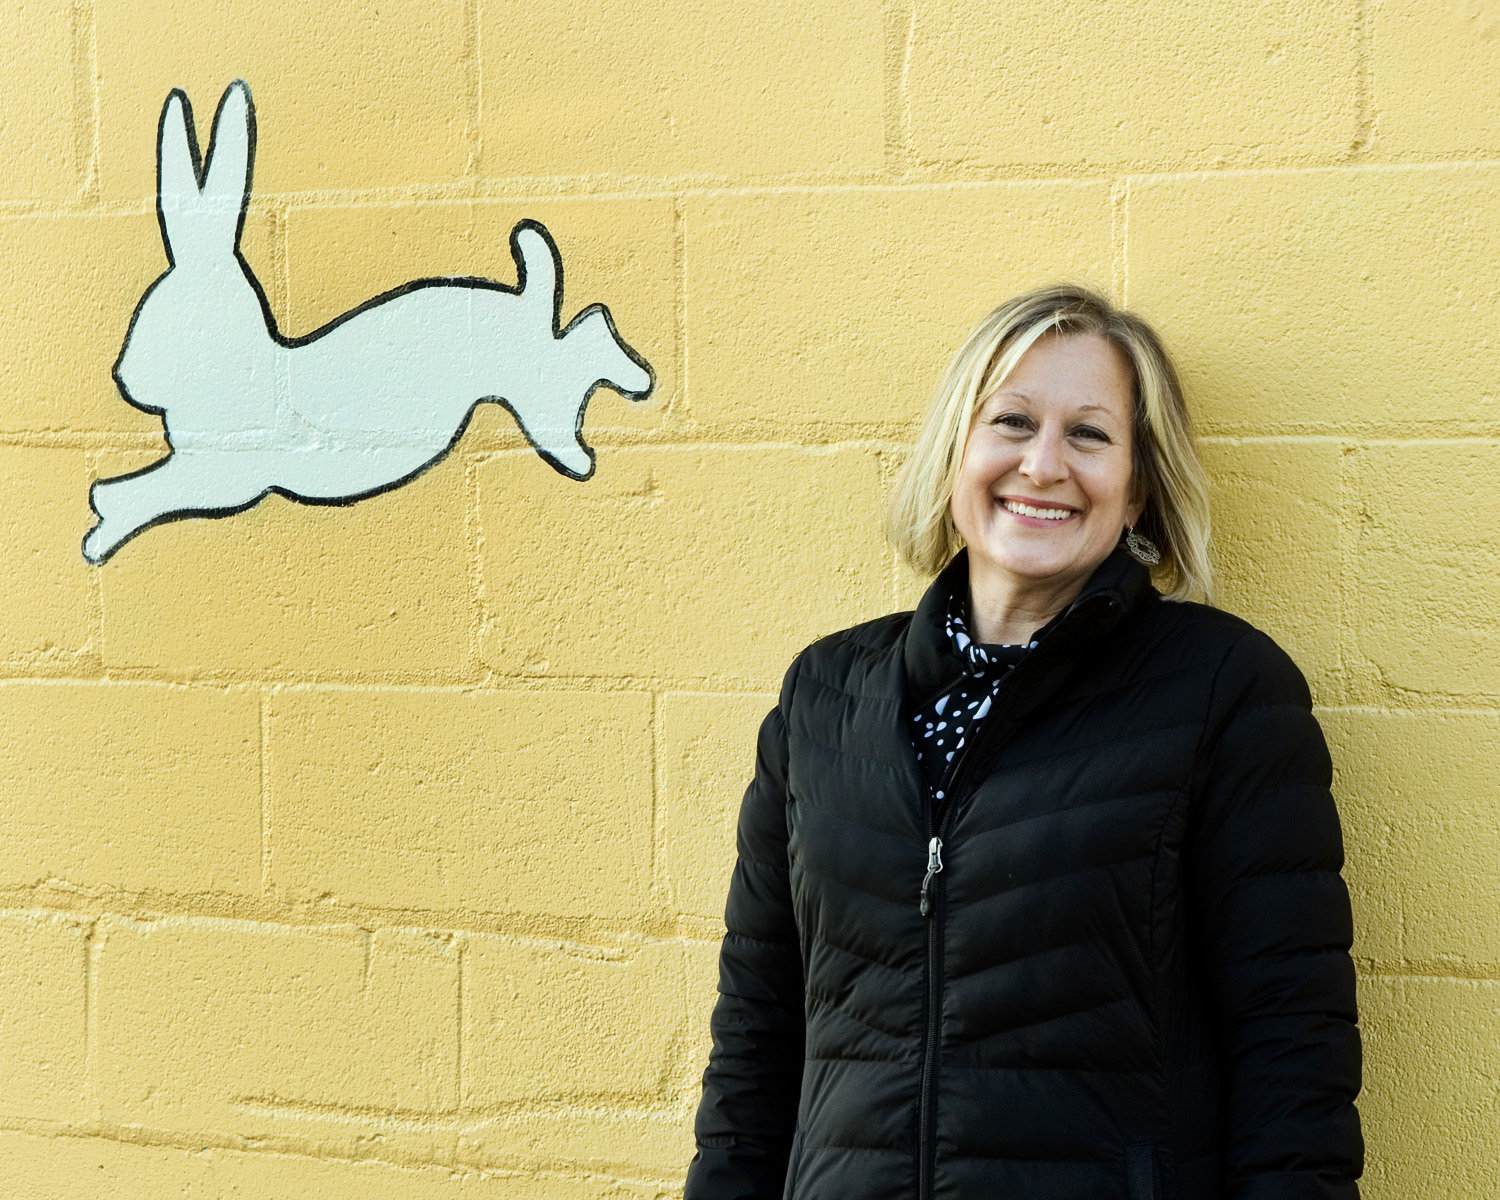 The Creative Enterprise Zone's new executive director Angela Casselton. The 18 murals that now grace the mostly industrial spaces of the CEZ are a great way to experience art, especially during the pandemic when museums are closed. View the map of where they are located on the CEZ website at www.creativeenterprisezone.org. (Photos by Margie O'Loughlin)